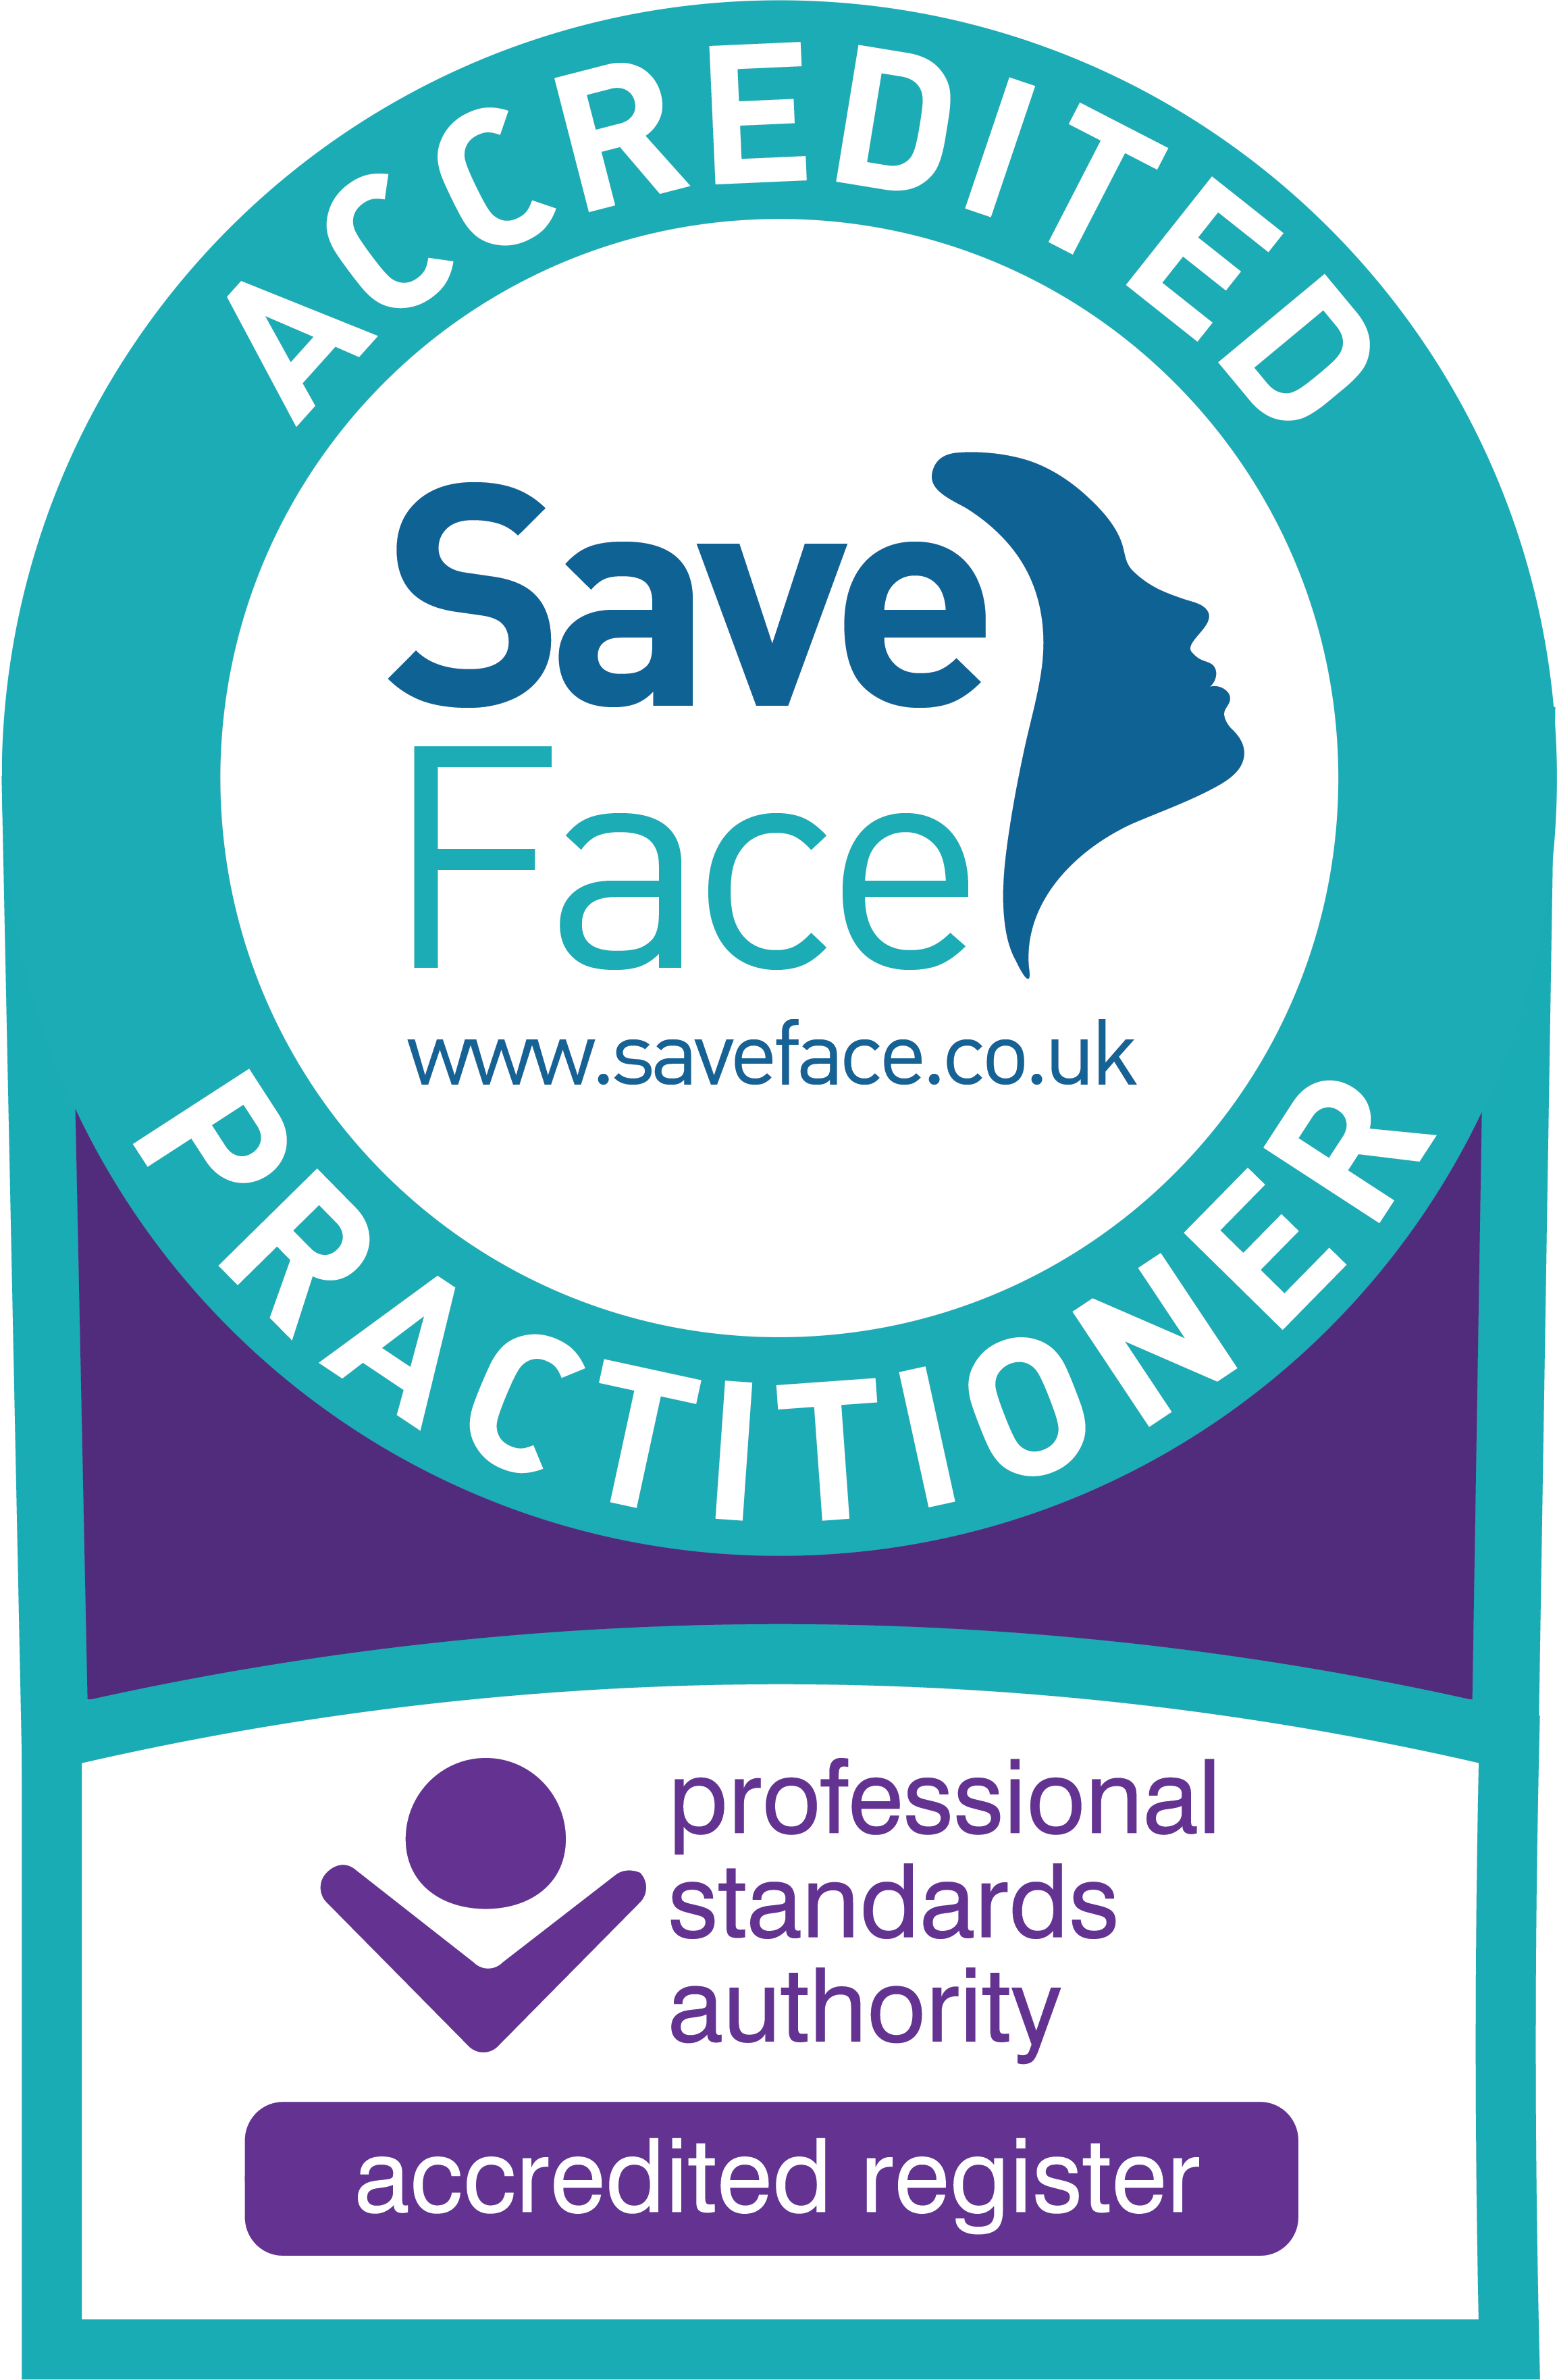 Safe face accredited practitioner logo